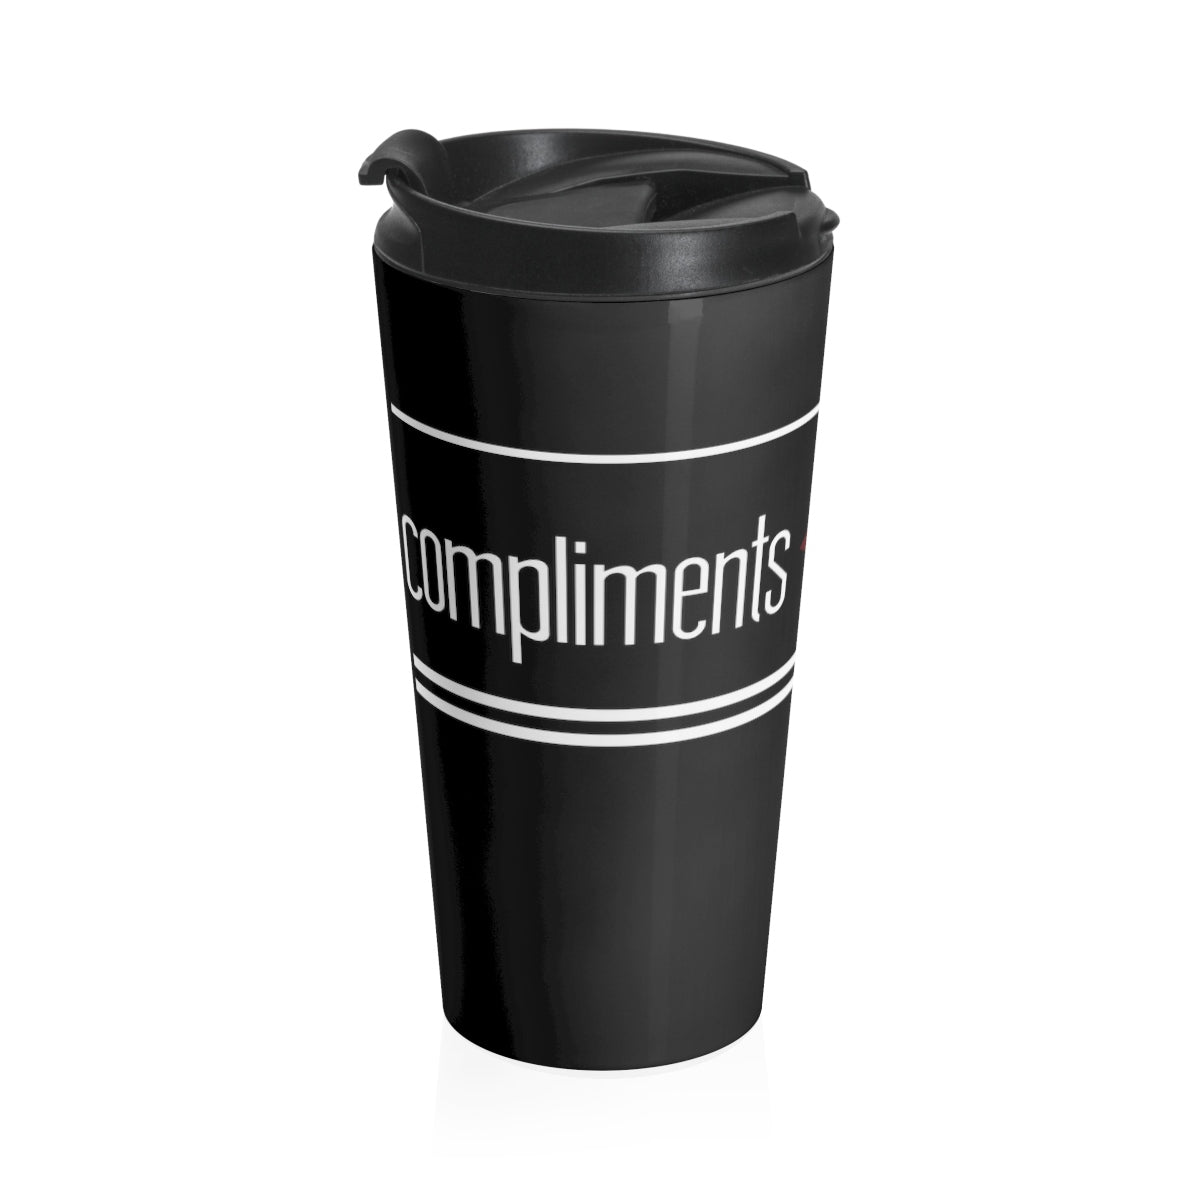 Compliments < Referrals Stainless Steel Travel Mug